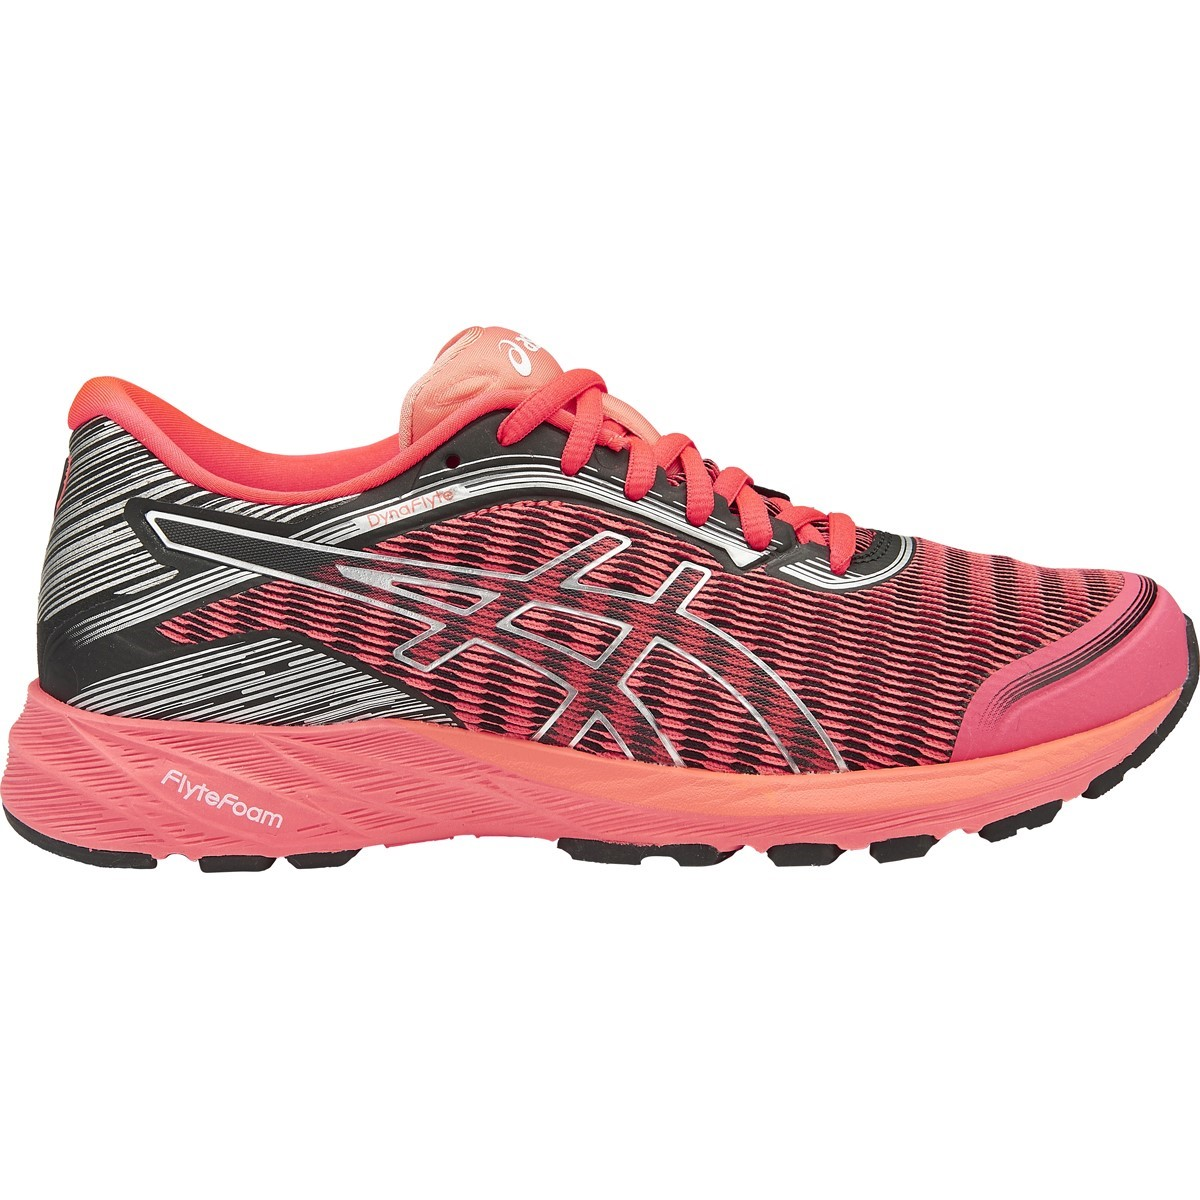 asics dynaflyte women's running shoes